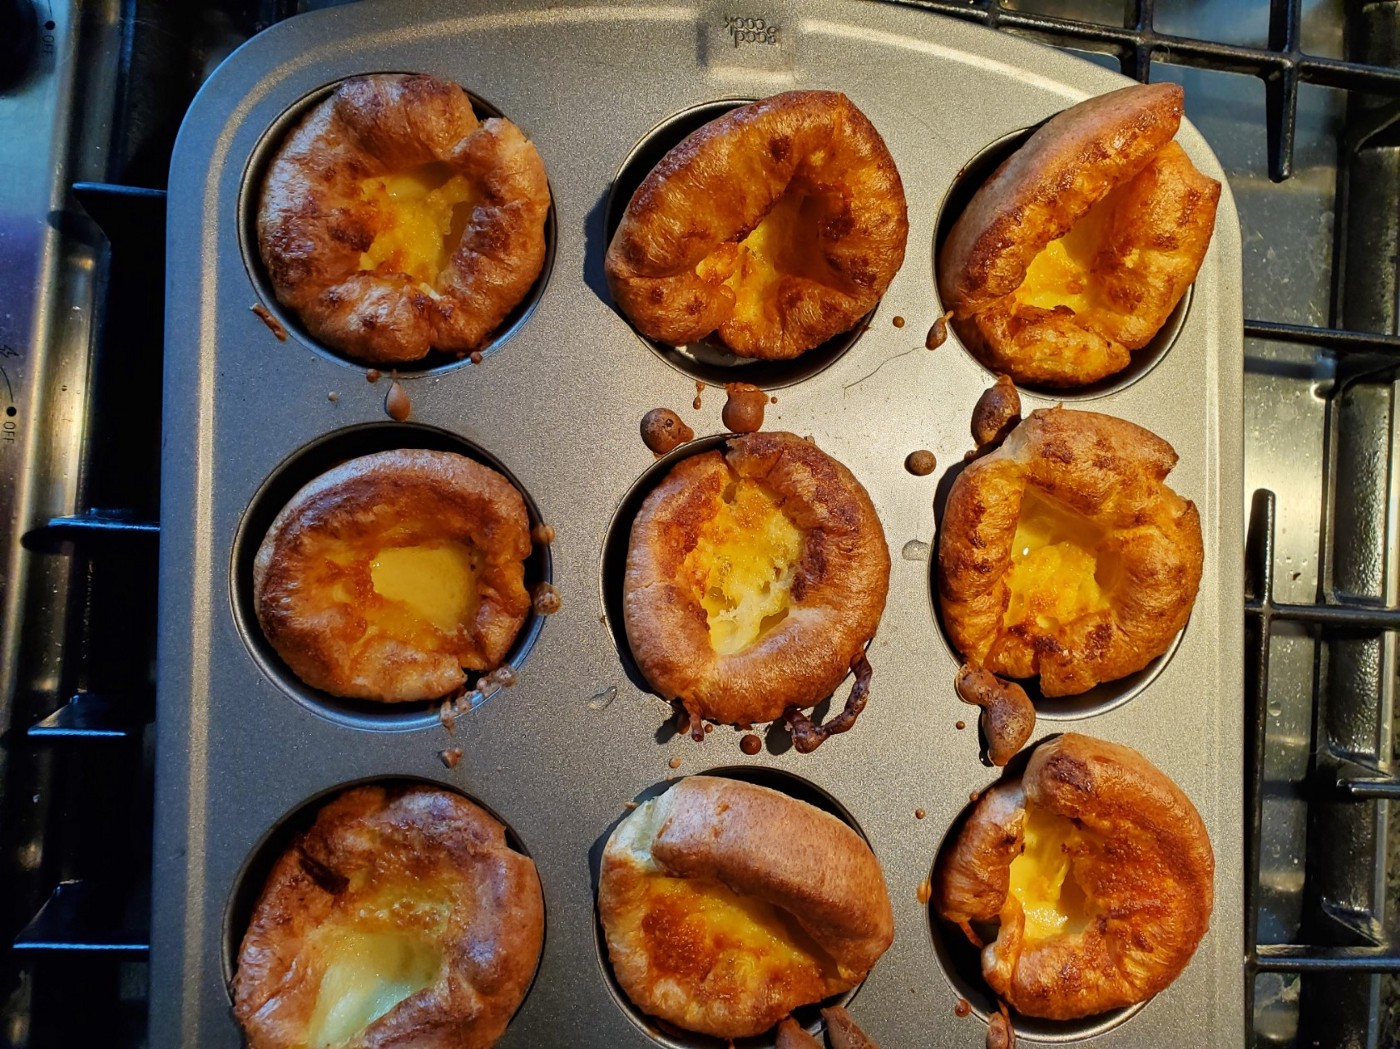 A muffin tin showing nine golden brown, cooked Yorkshire Puddings.